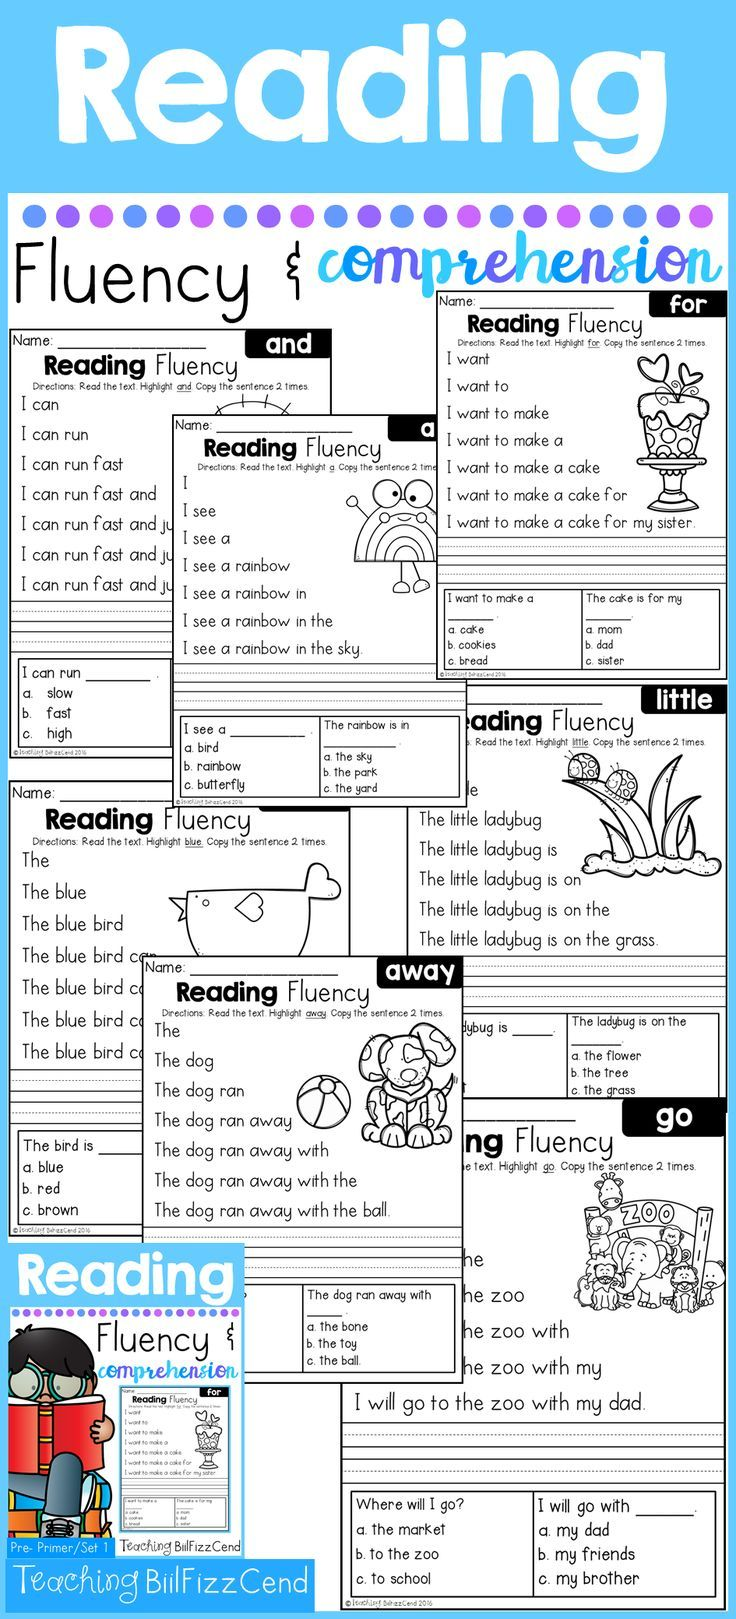 Reading Fluency and Comprehension (Set 1)